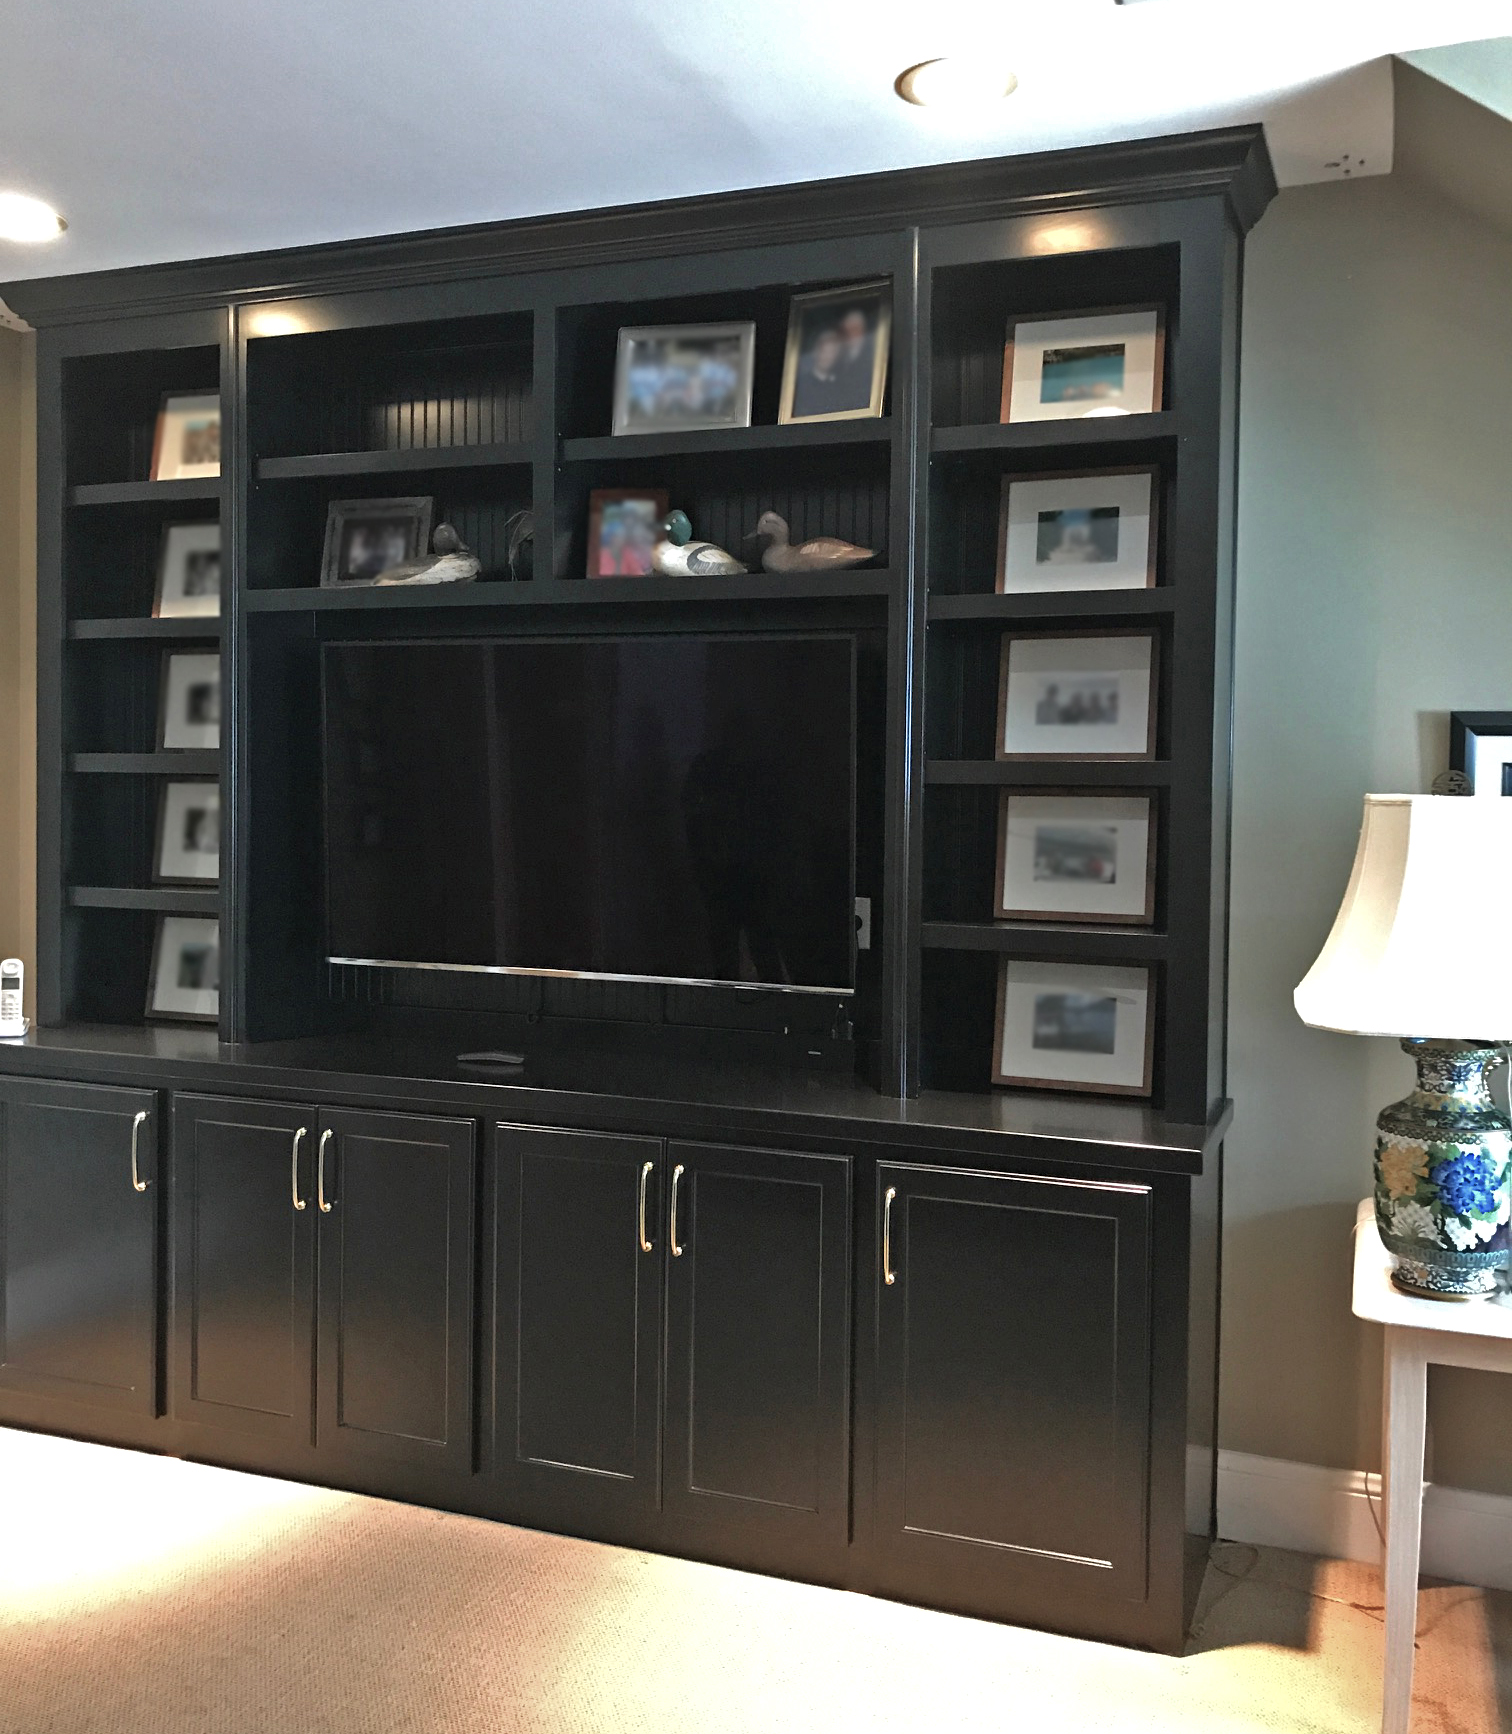 Built-In with Beadboard Packer, Shaker Doors, Adjustable Shelves, and Crown